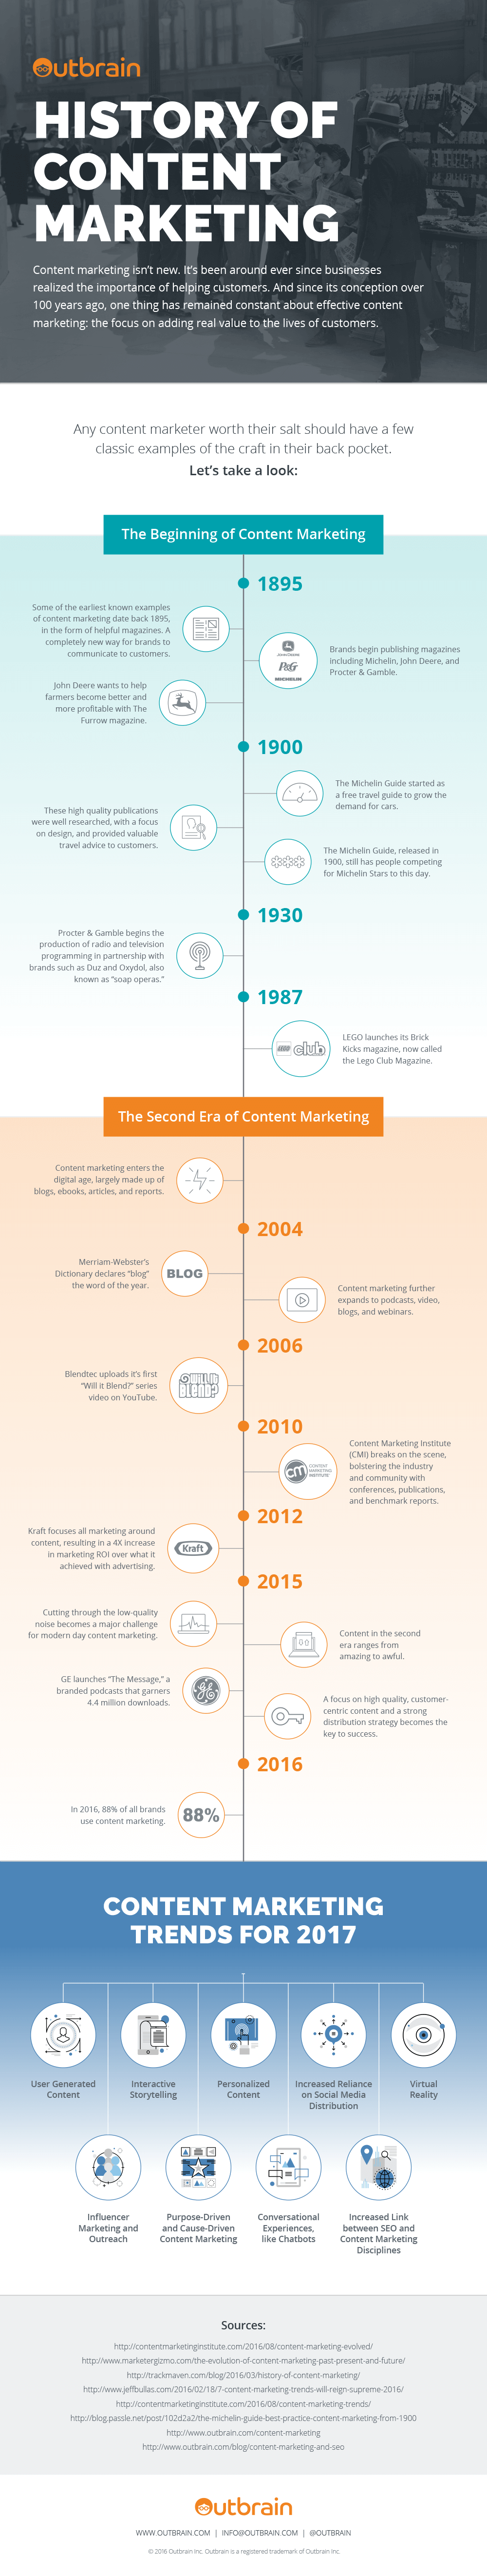 content marketing history